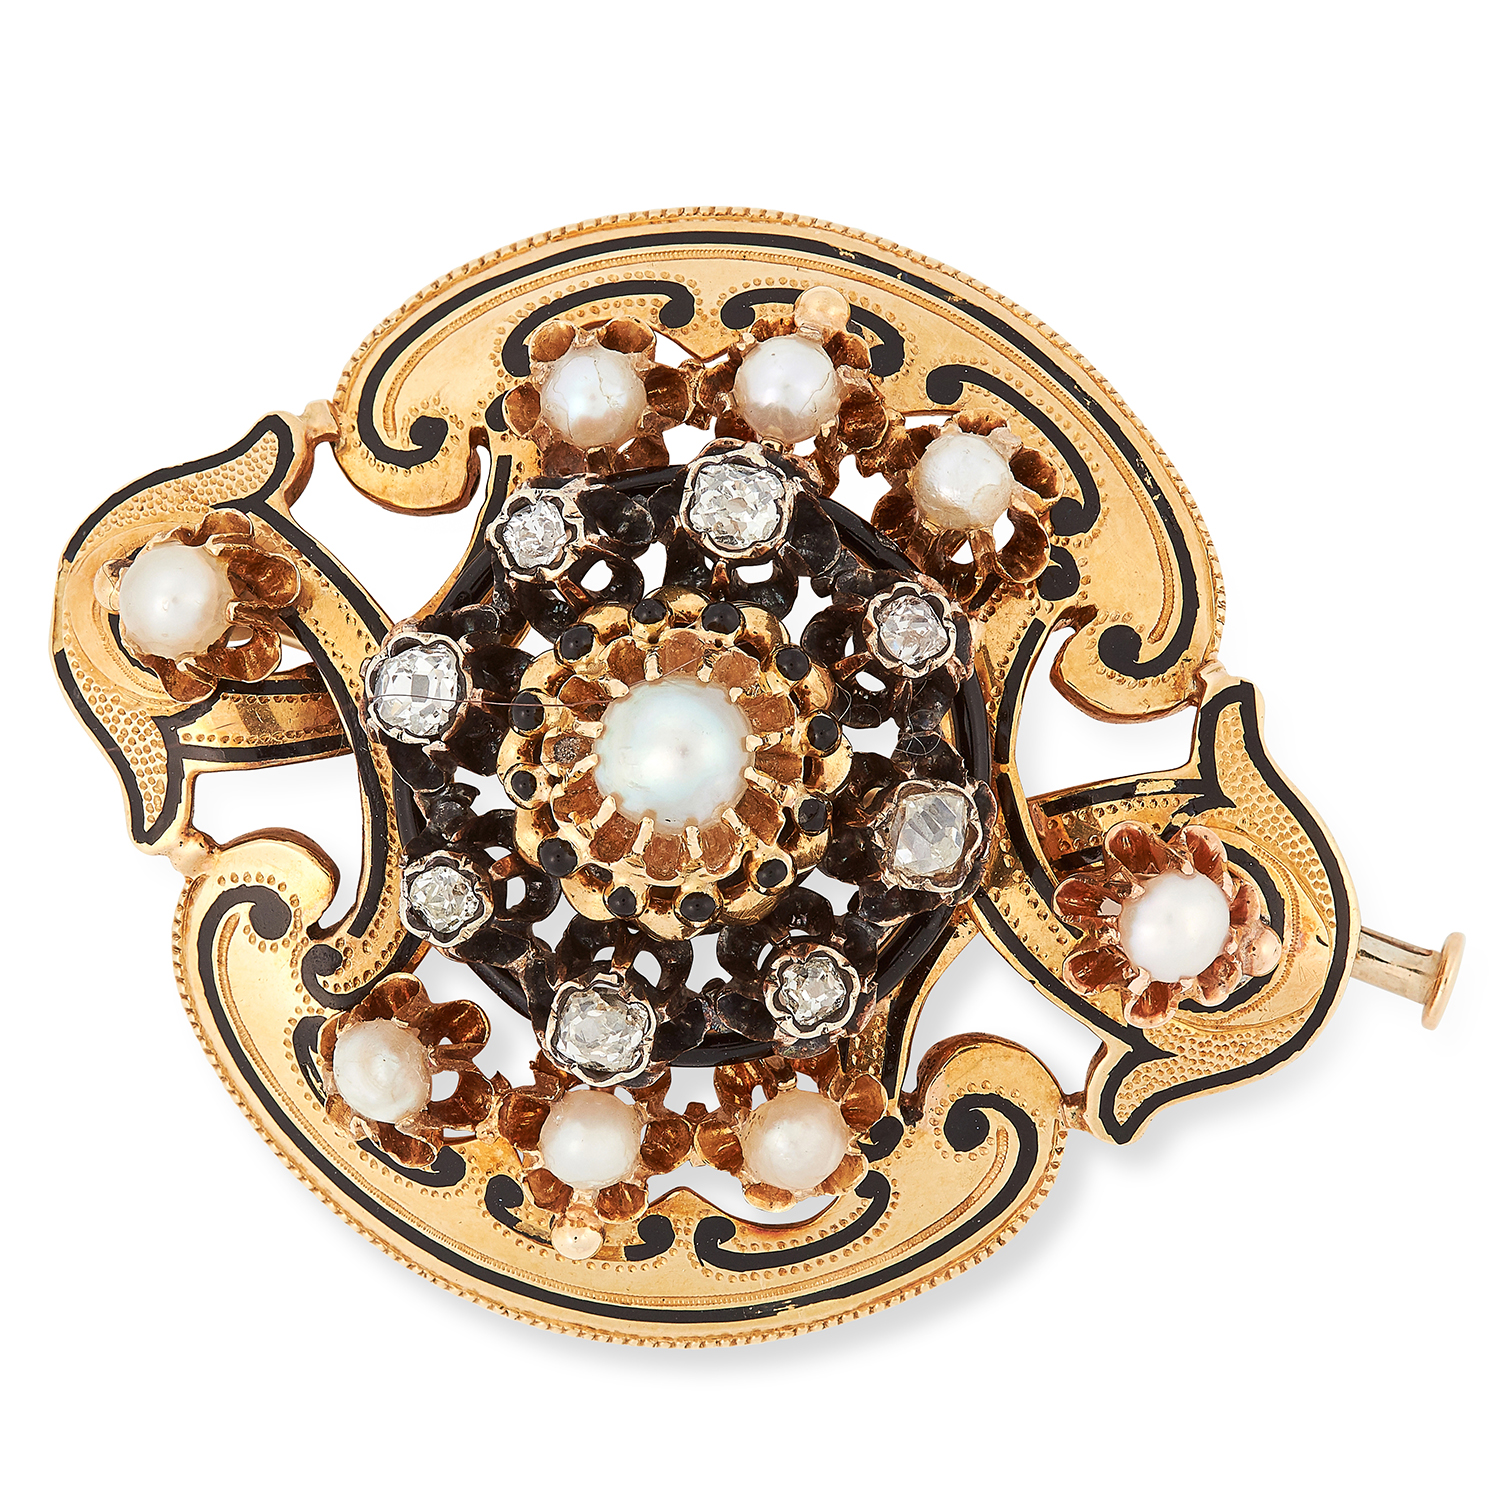 Los 63 - ANTIQUE VICTORIAN PEARL, DIAMOND AND ENAMEL BROOCH set with pearls, old cut diamonds and black